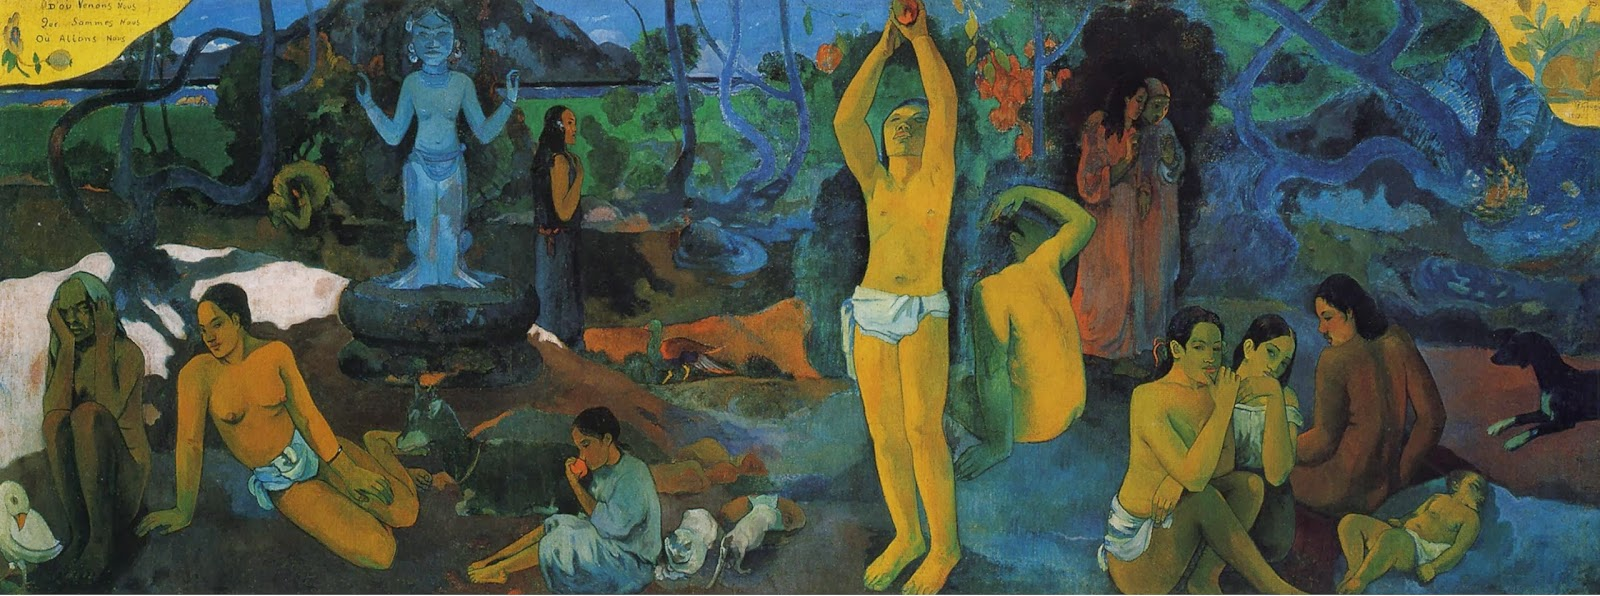 Paul Gauguin: Where do we come from? What Are We? Where Are We Going? 1897.